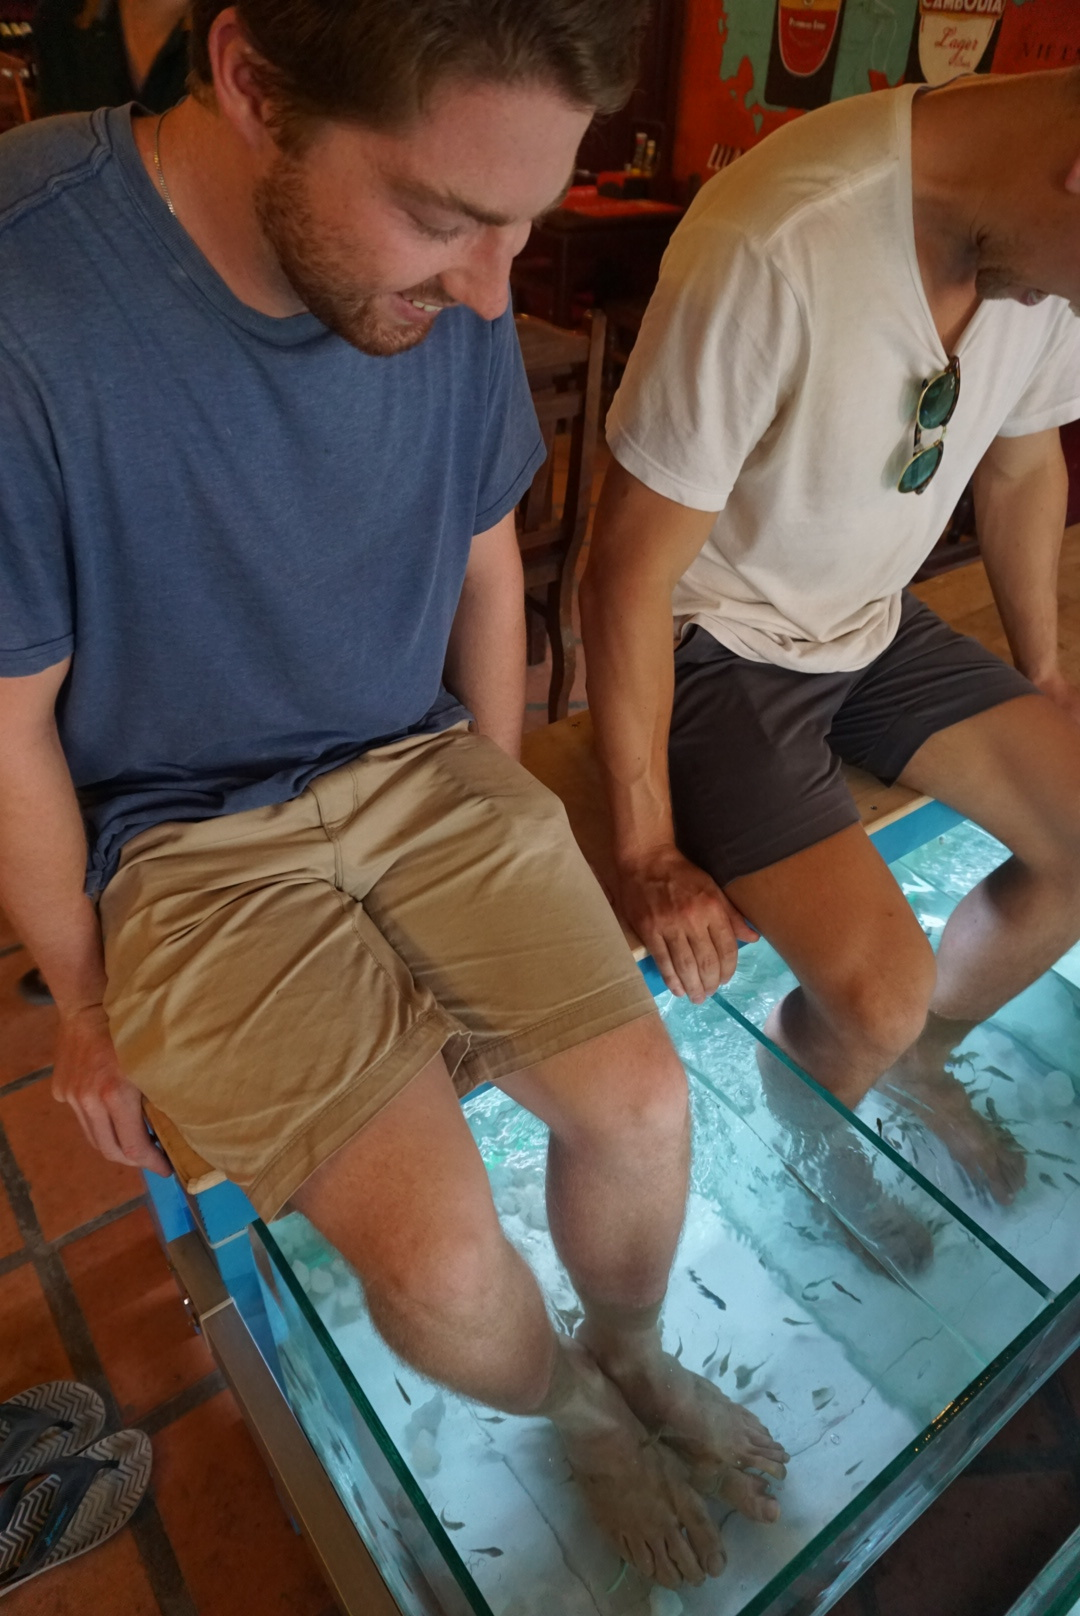 The boys getting fish pedicures downtown